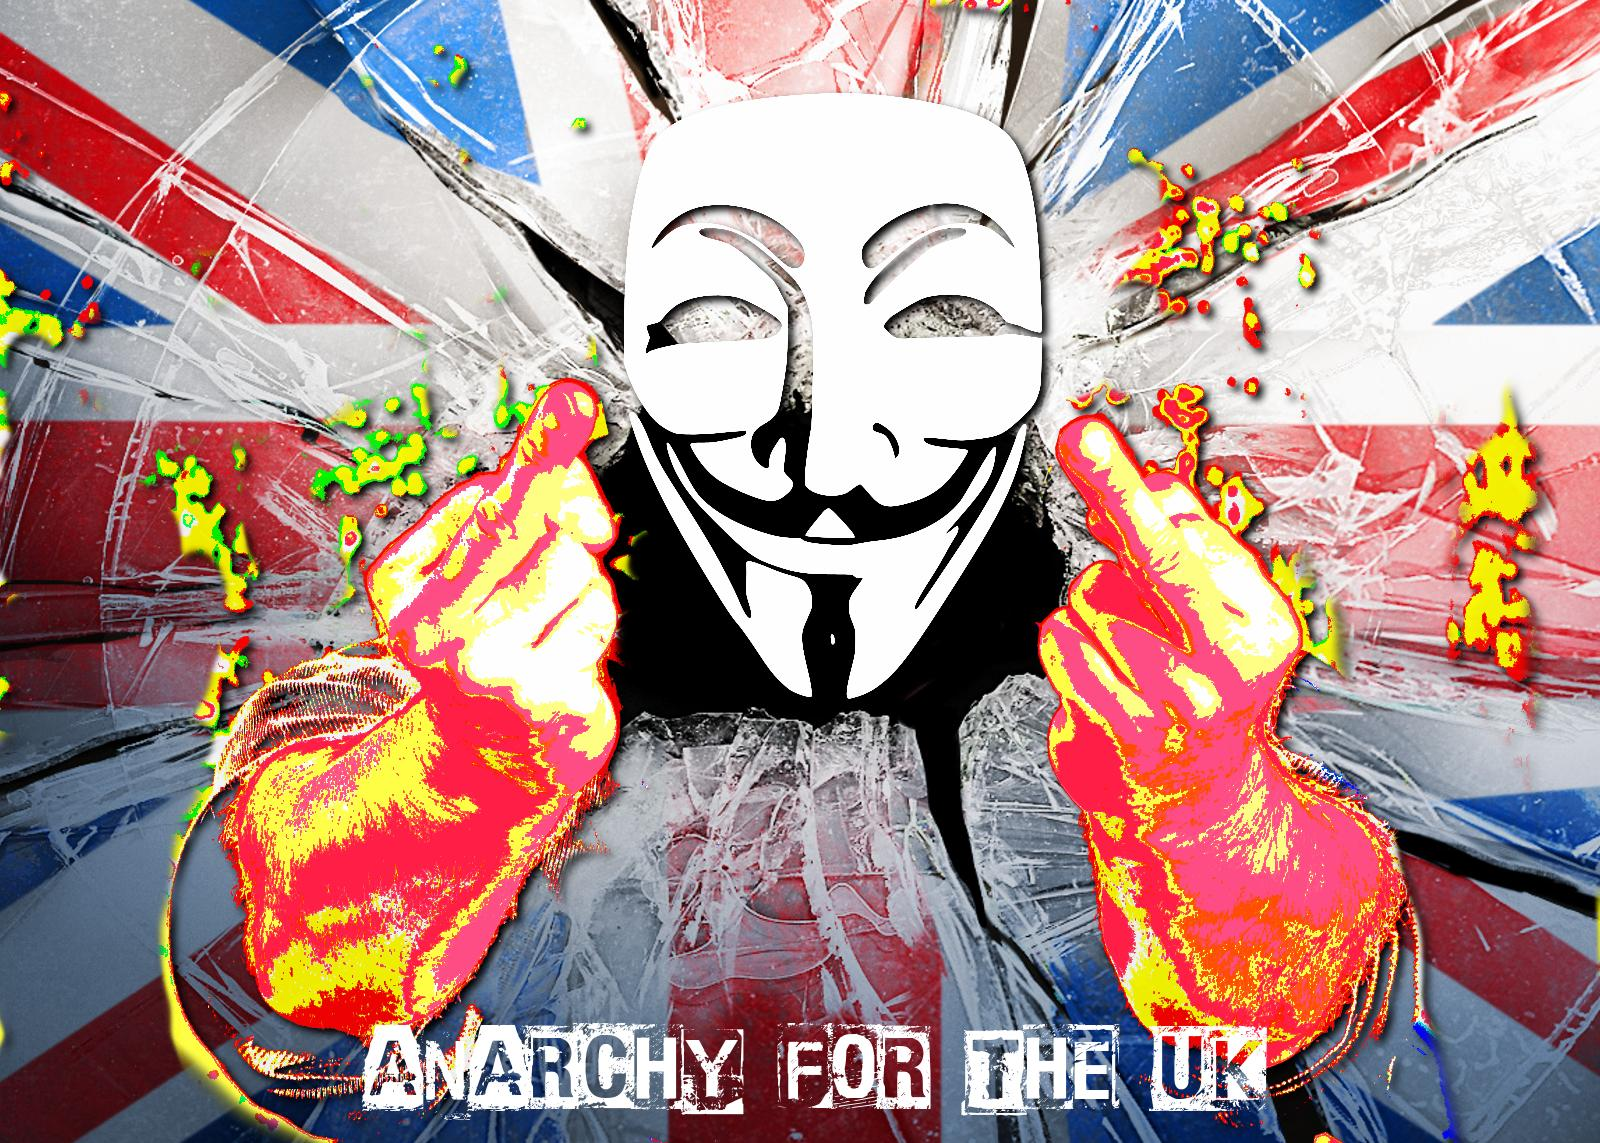 Anarchy for the UK